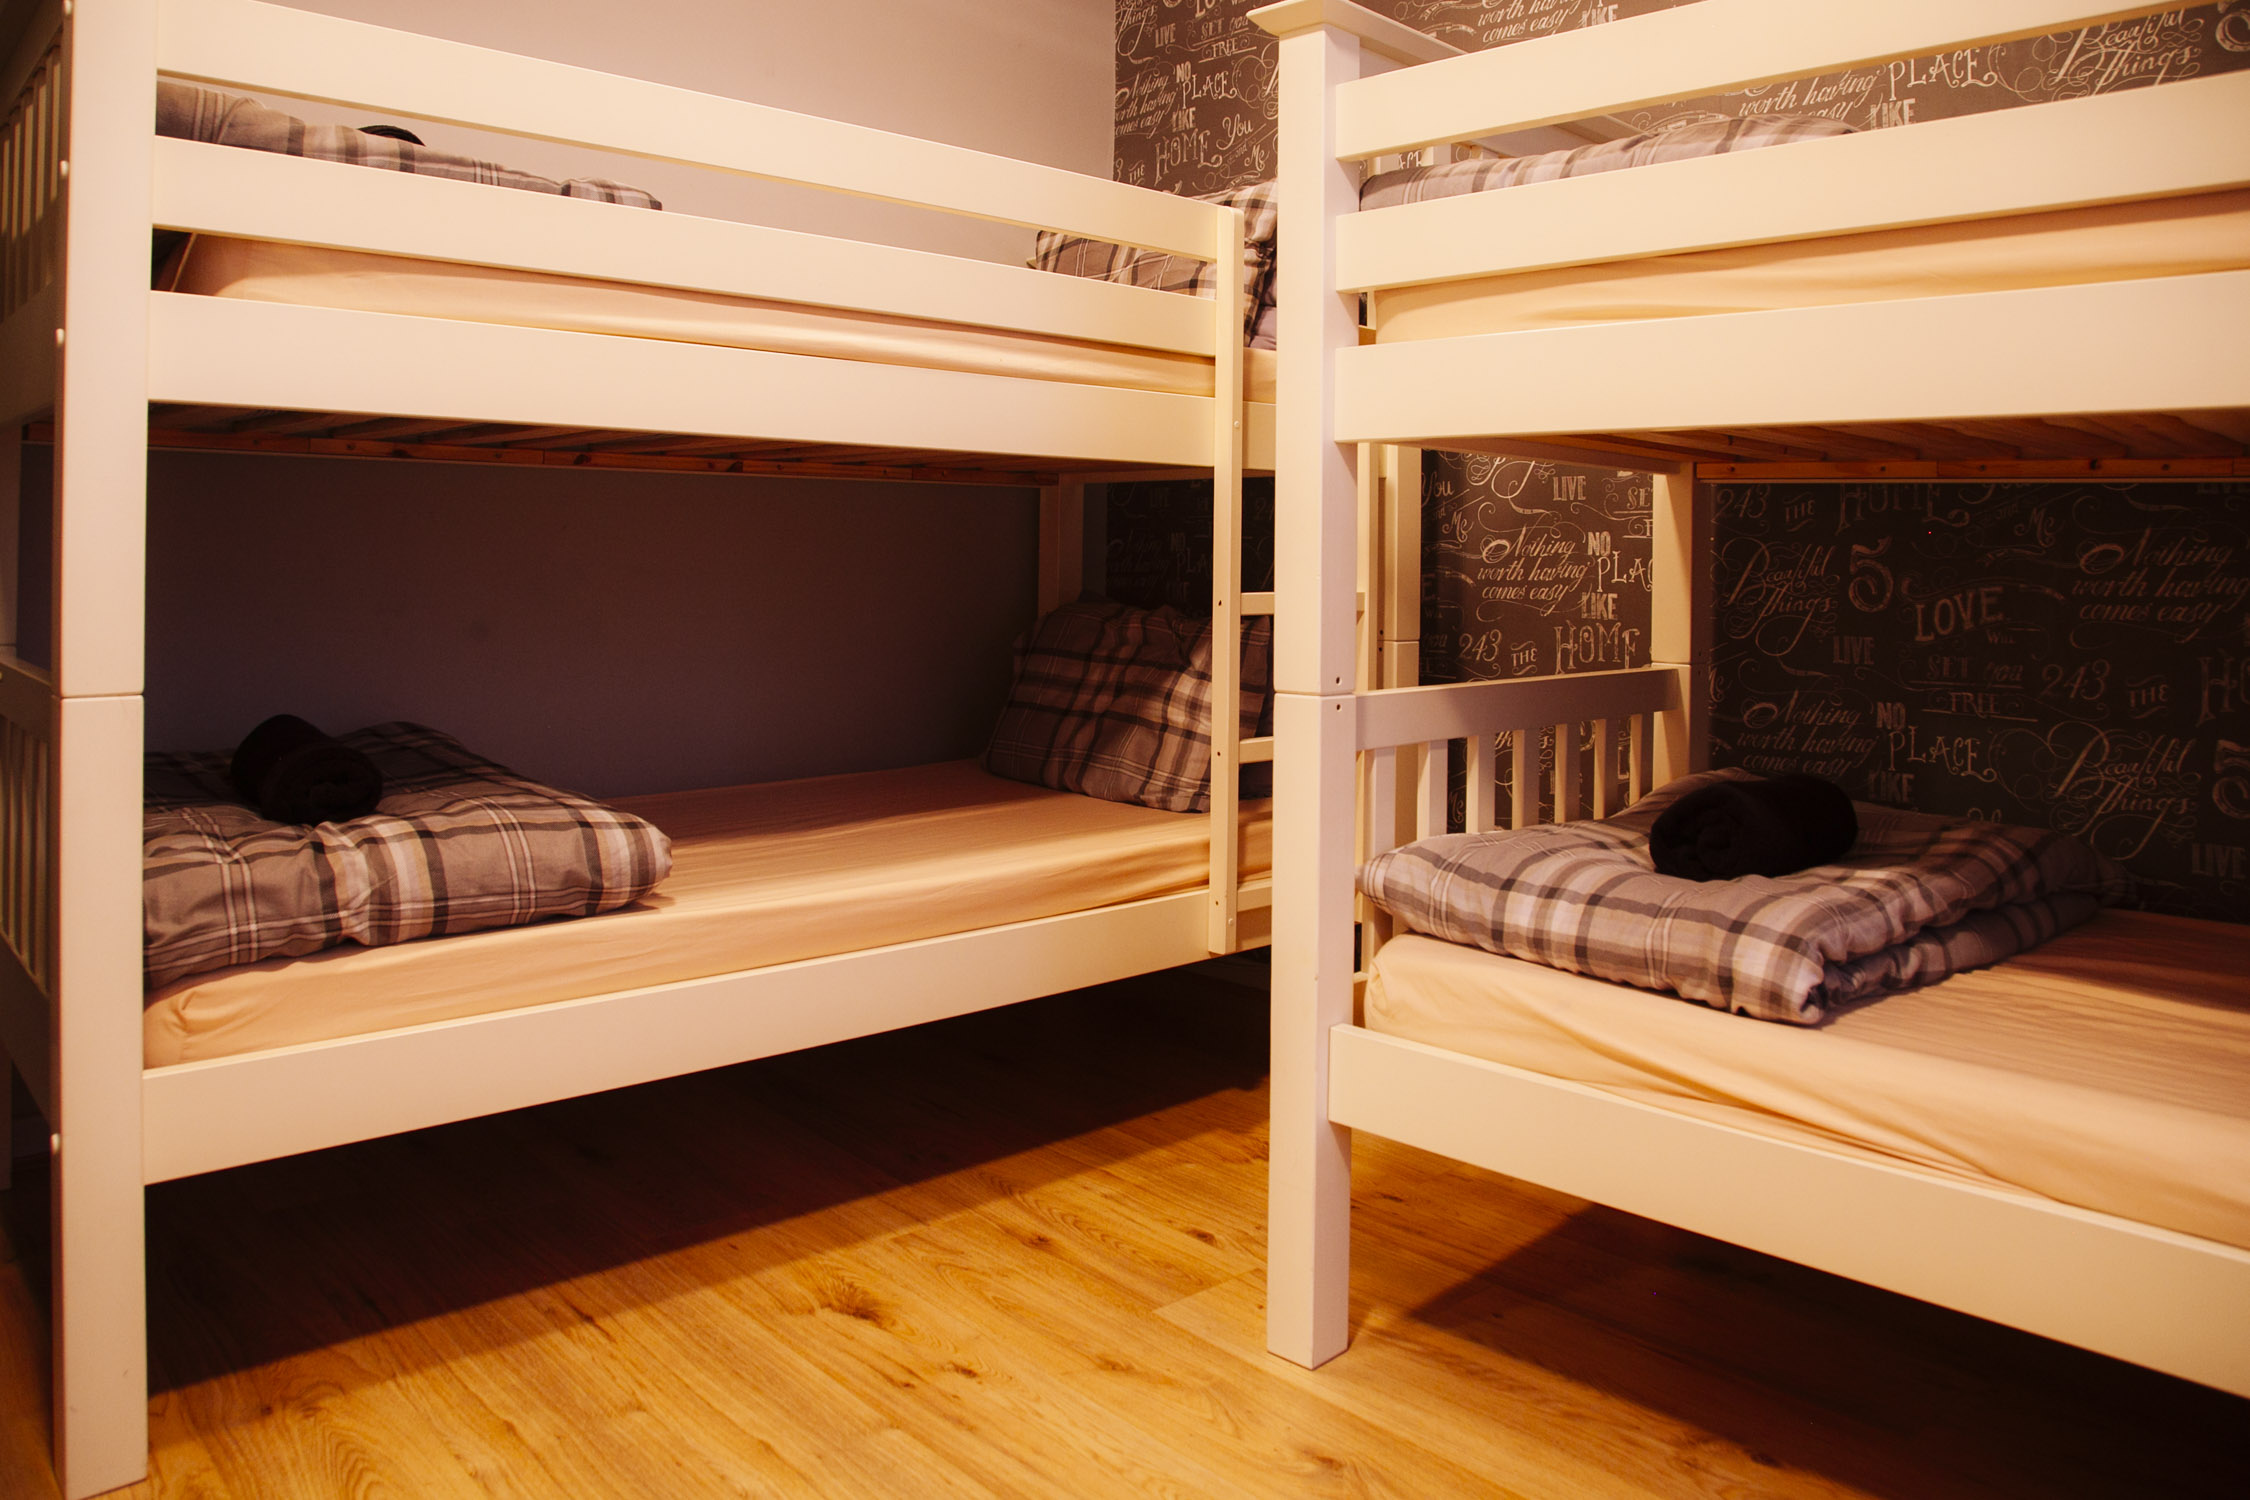 four bed private - A four bed room with shared bathroom.